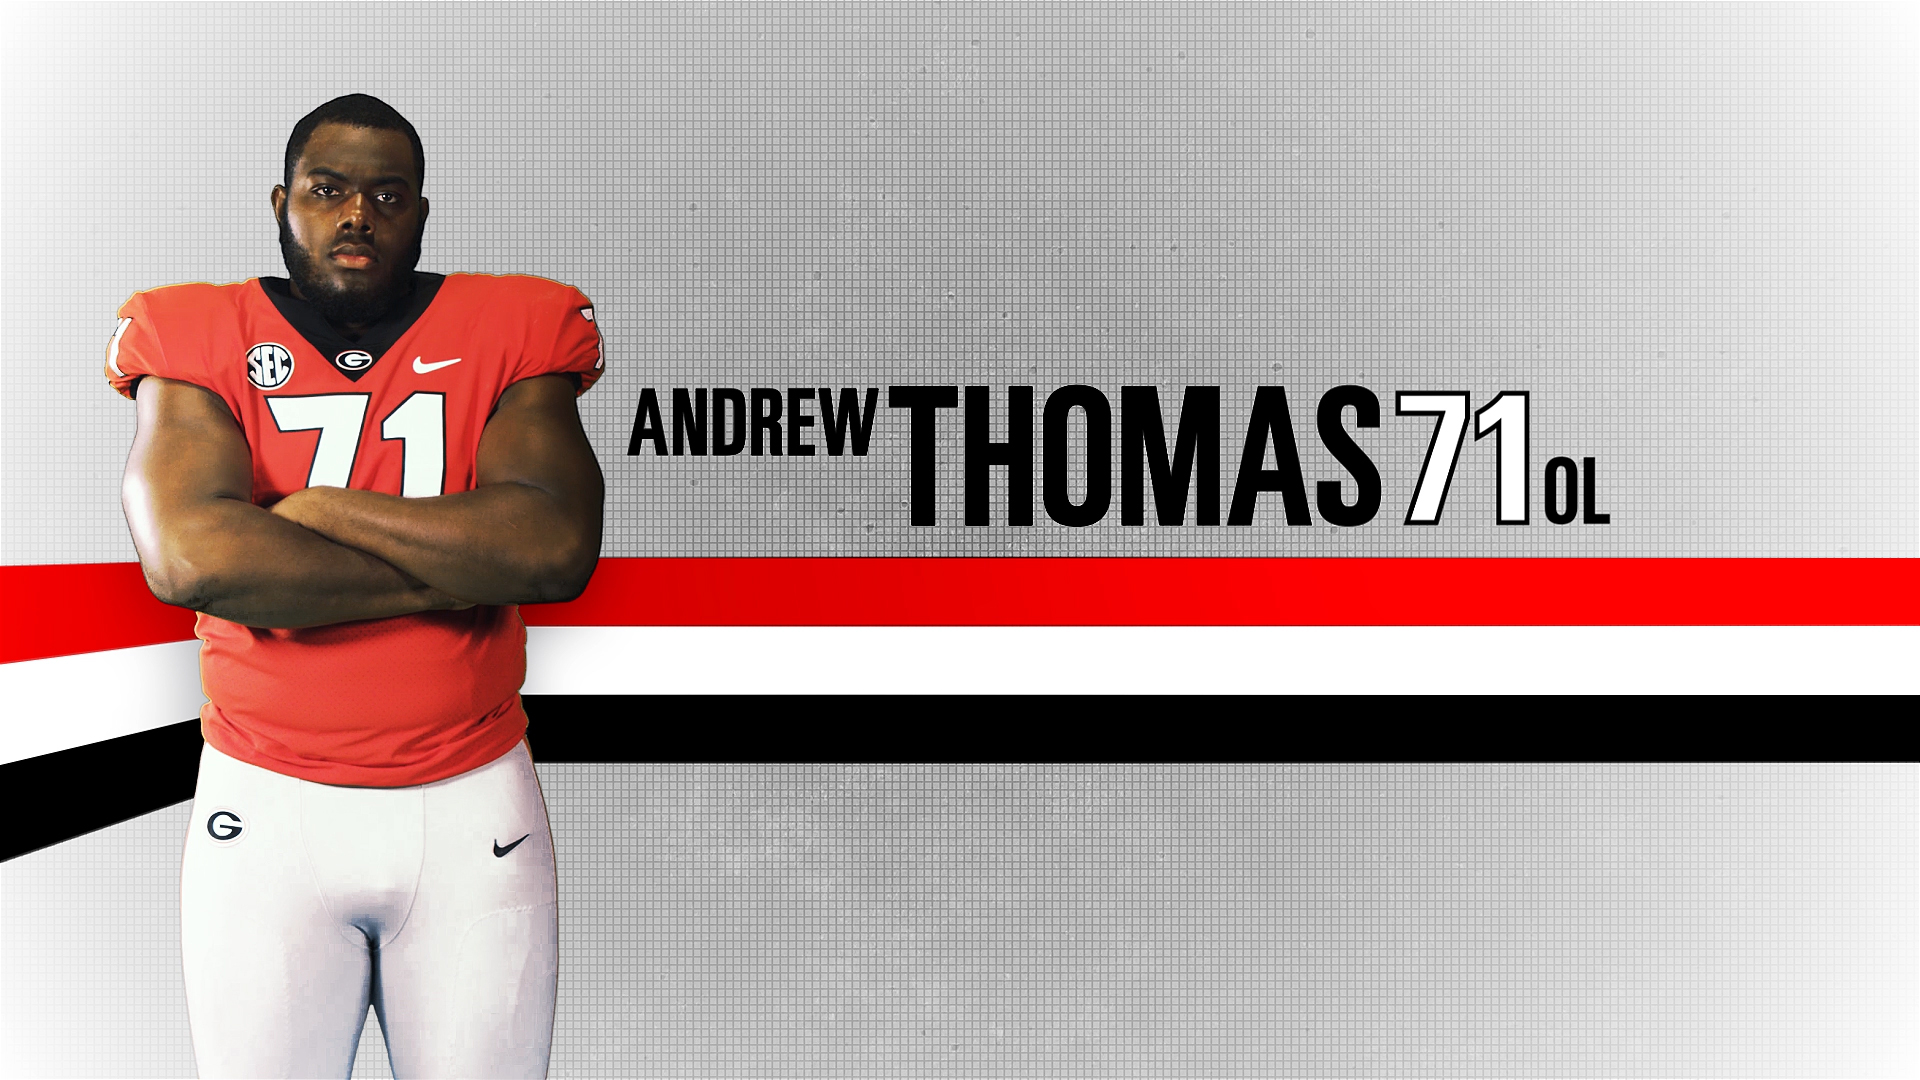 Does Andrew Thomas Help The New York Giants In StatementGames (NFL) Fantasy Football?